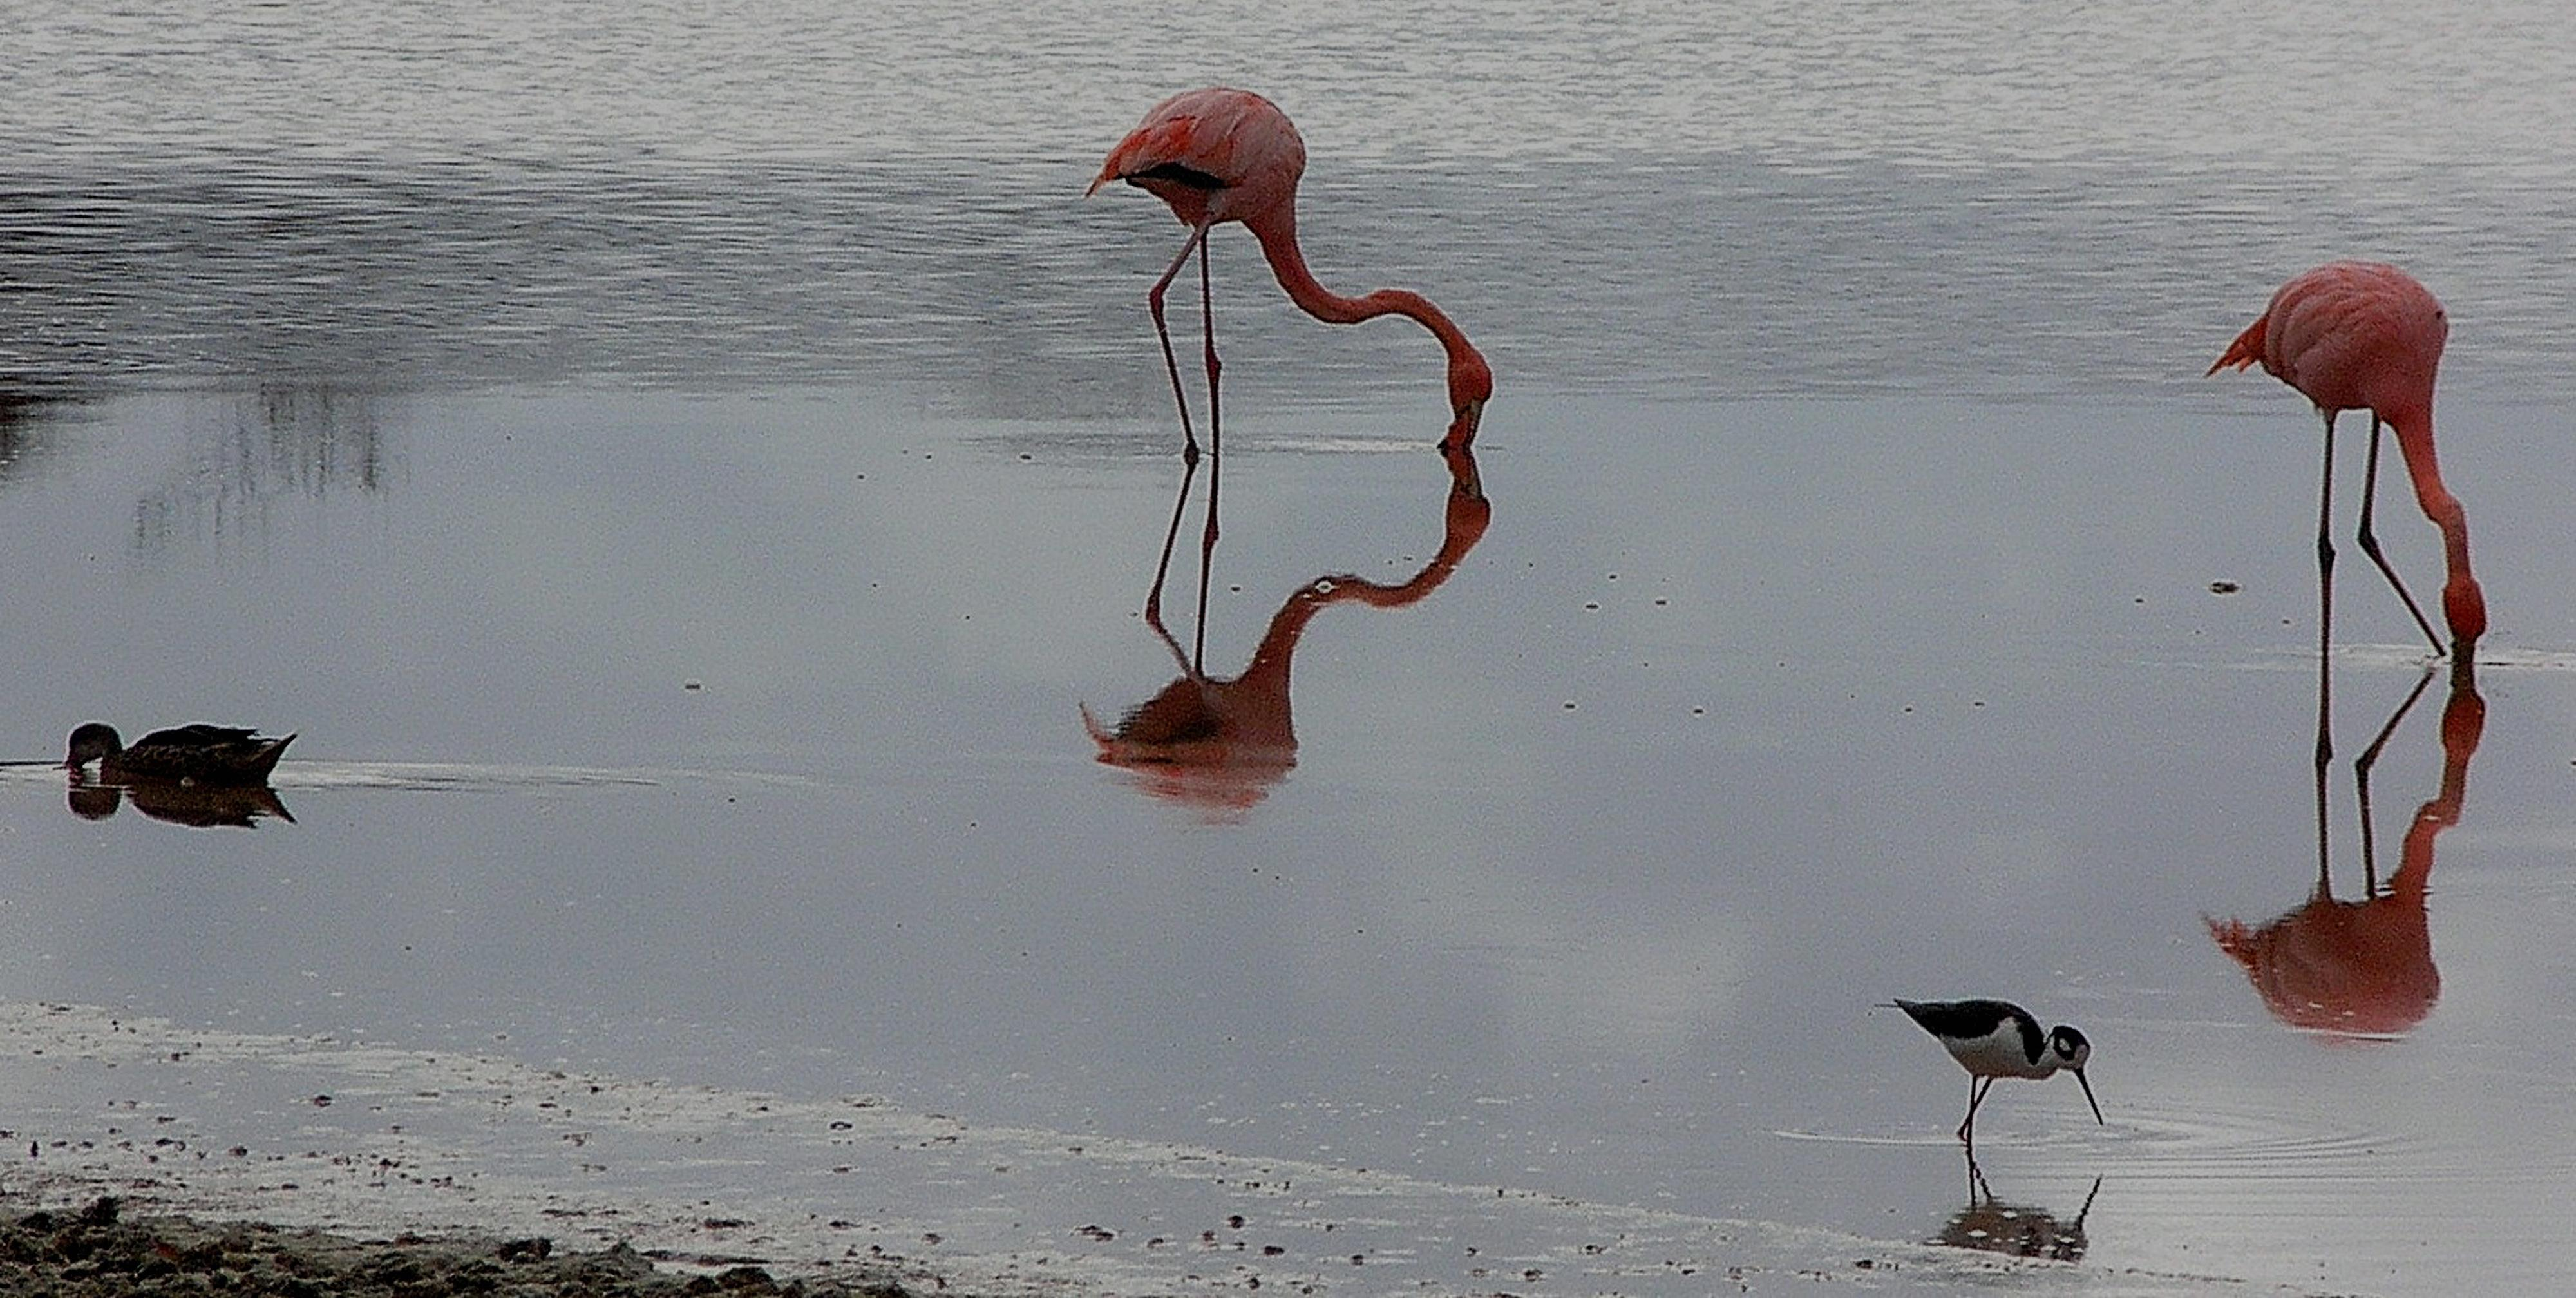 Flamants roses se nourrissant